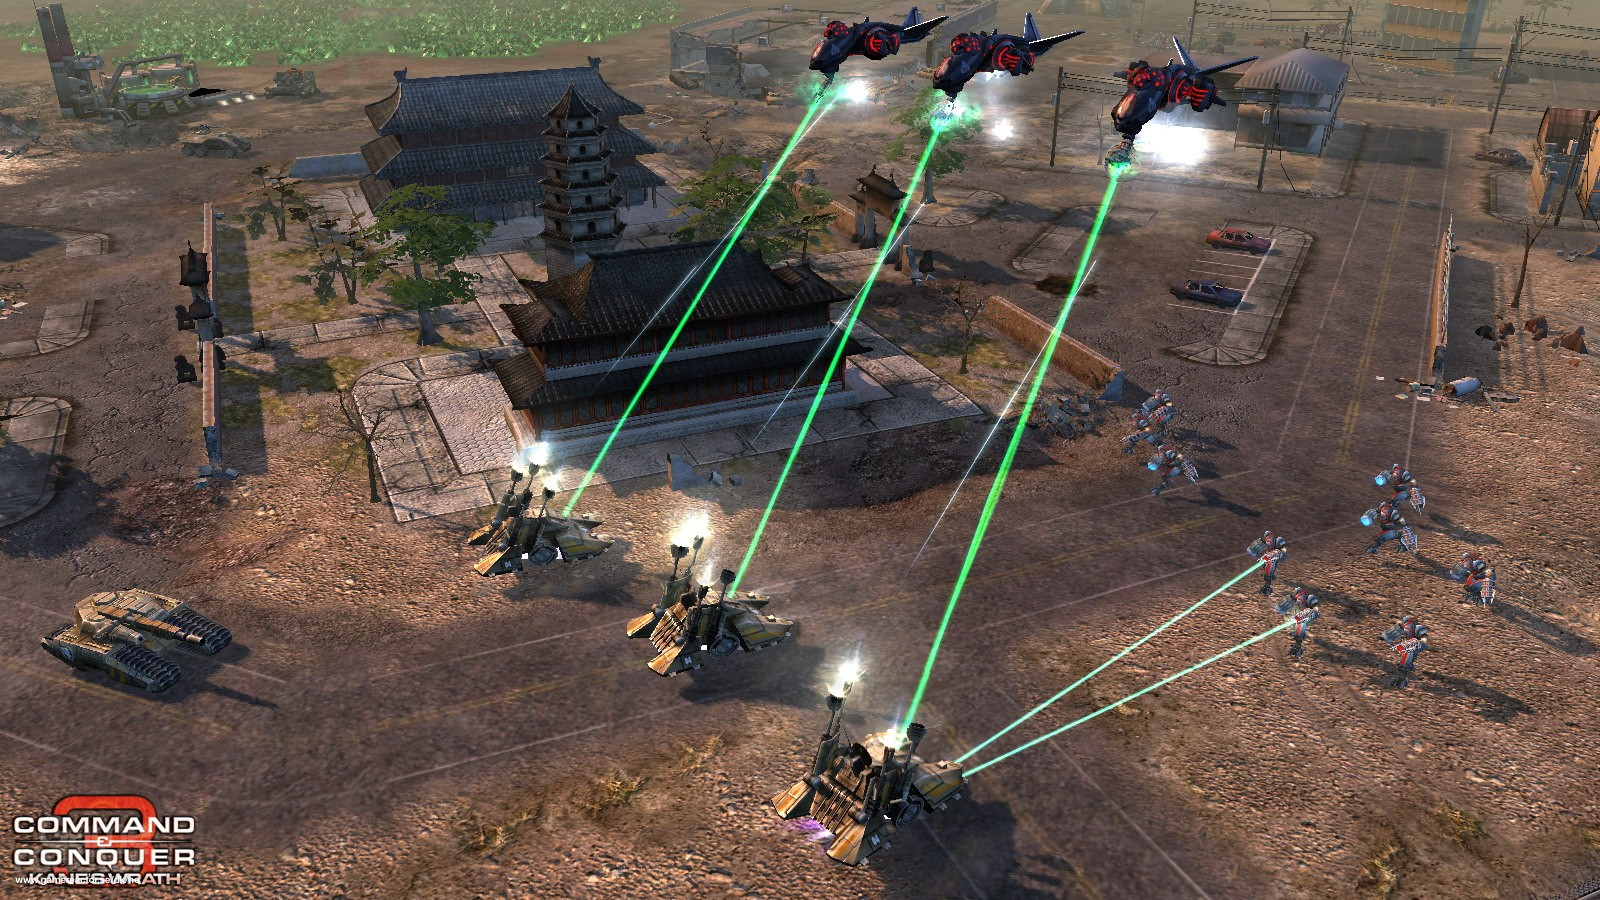 Command conquer 3 kane' s wrath